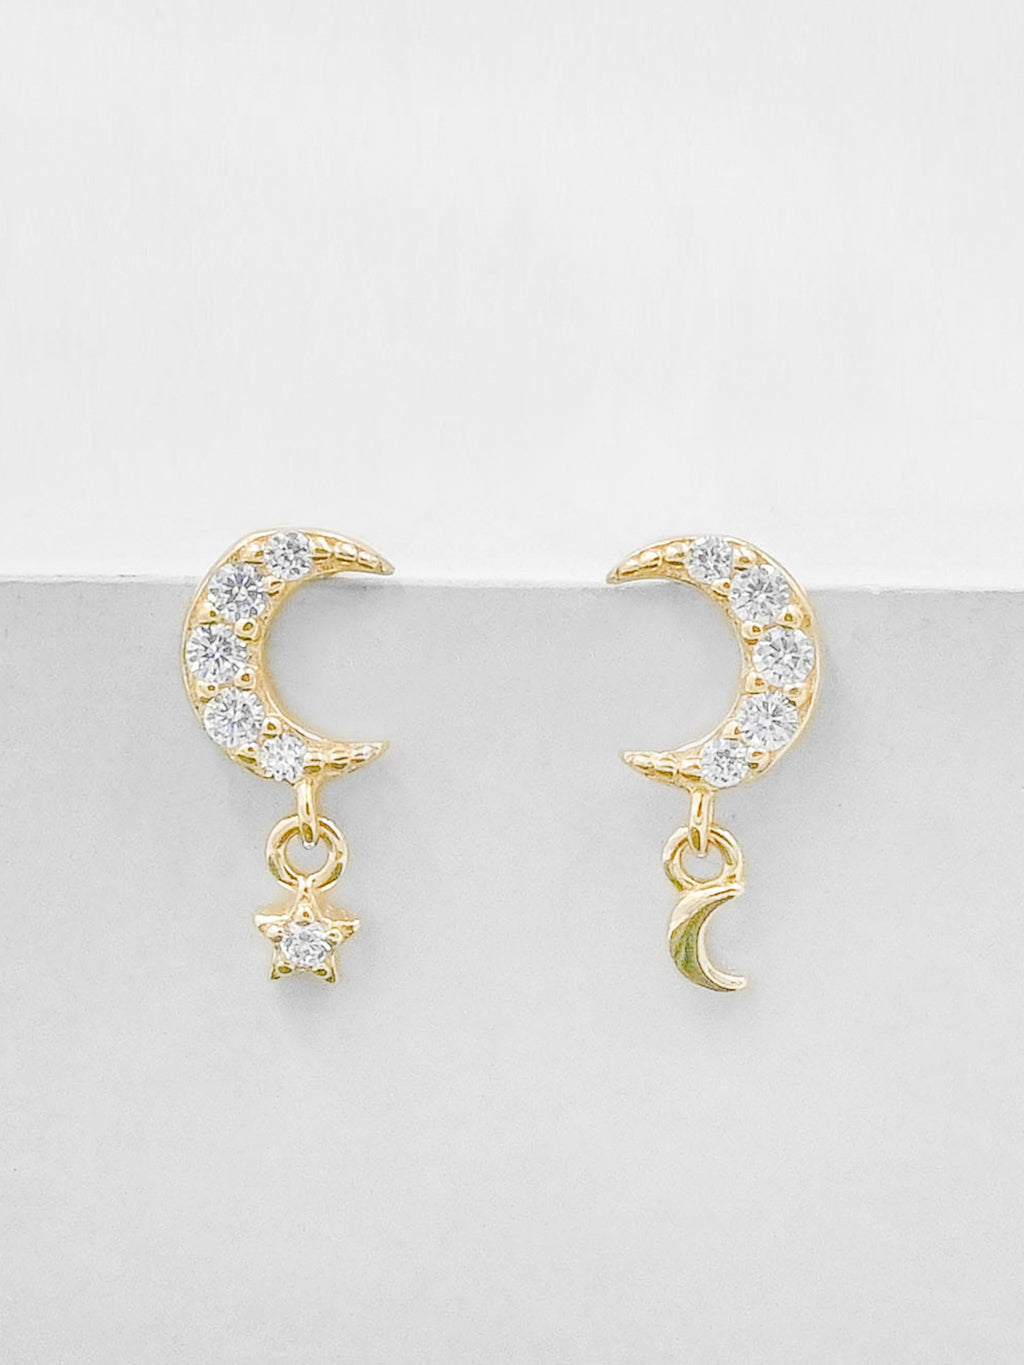 Minimalistic Dangle Moon and Star CZ Dainty Gold Plated Earrings by The Faint hearted Jewelry